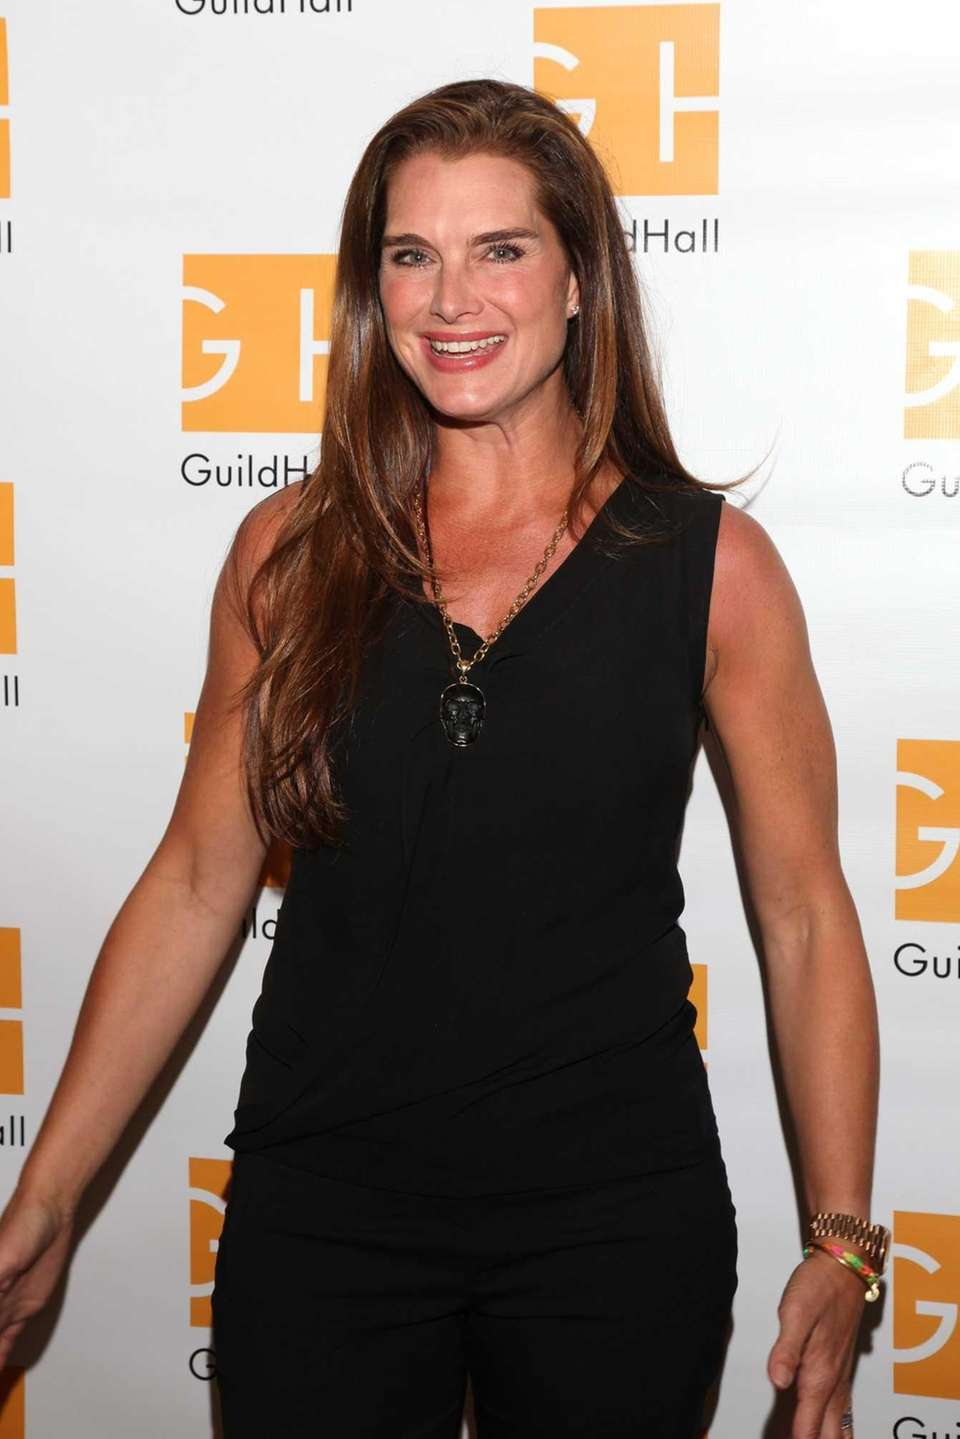 Brooke Shields attends the